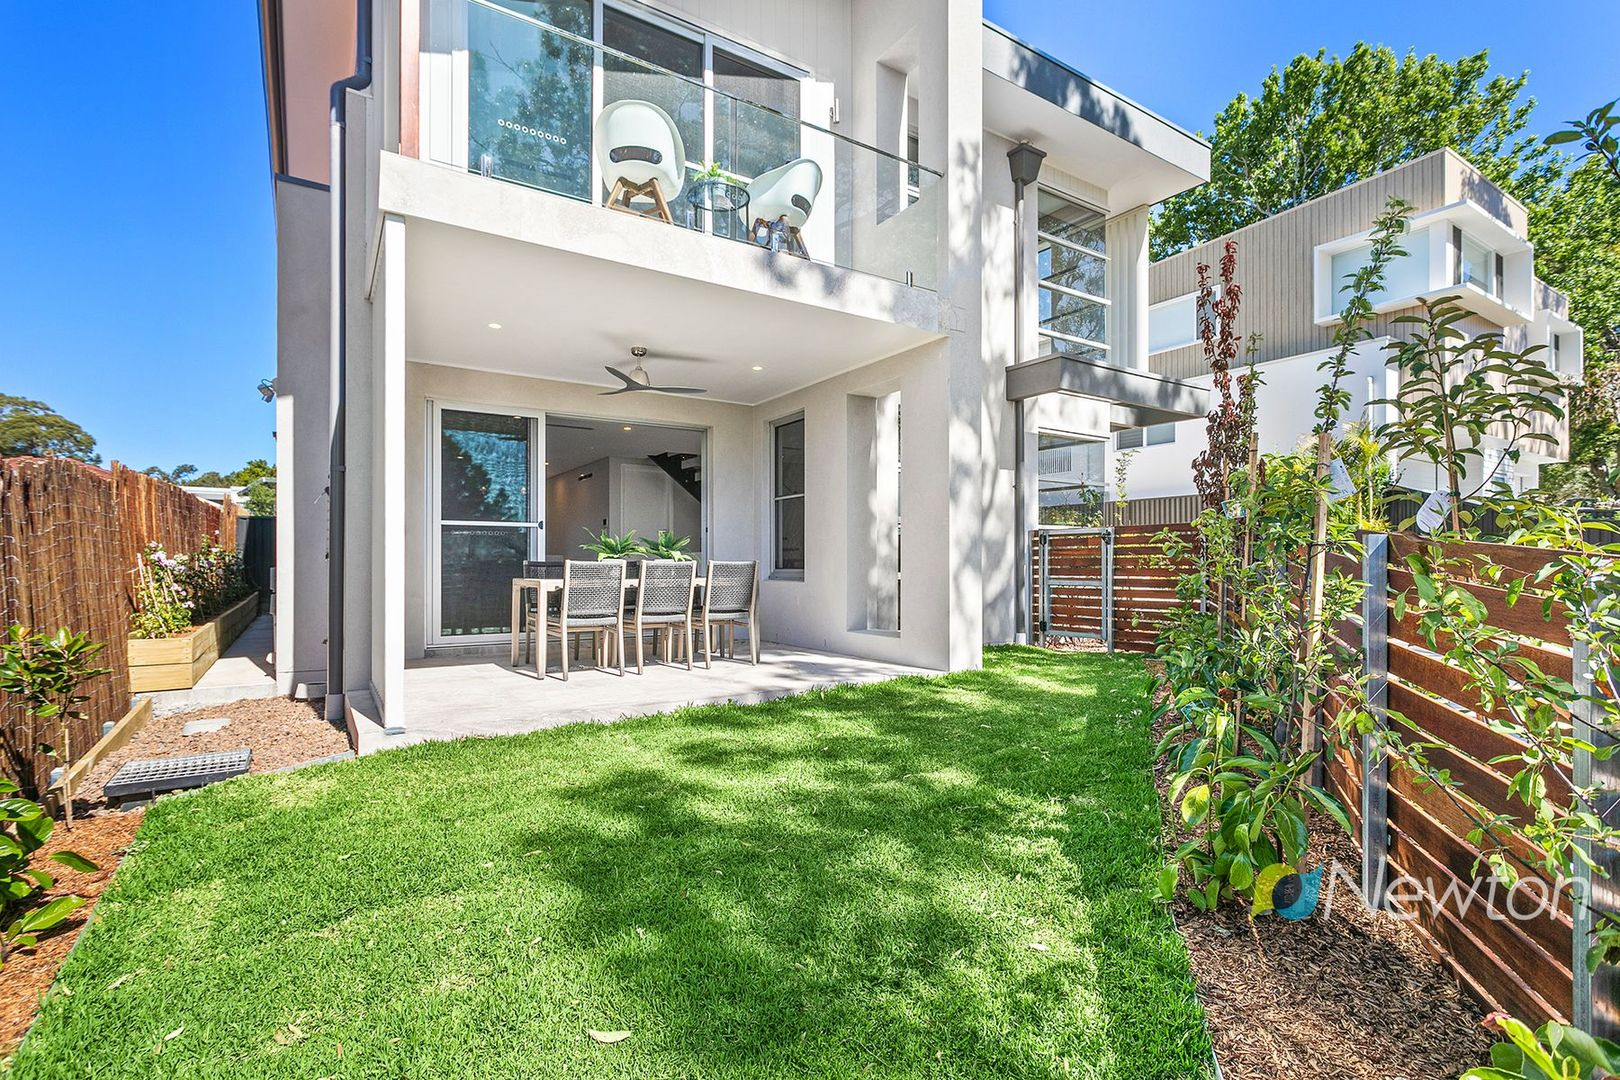 1/26 Dolans Road, Woolooware NSW 2230, Image 0